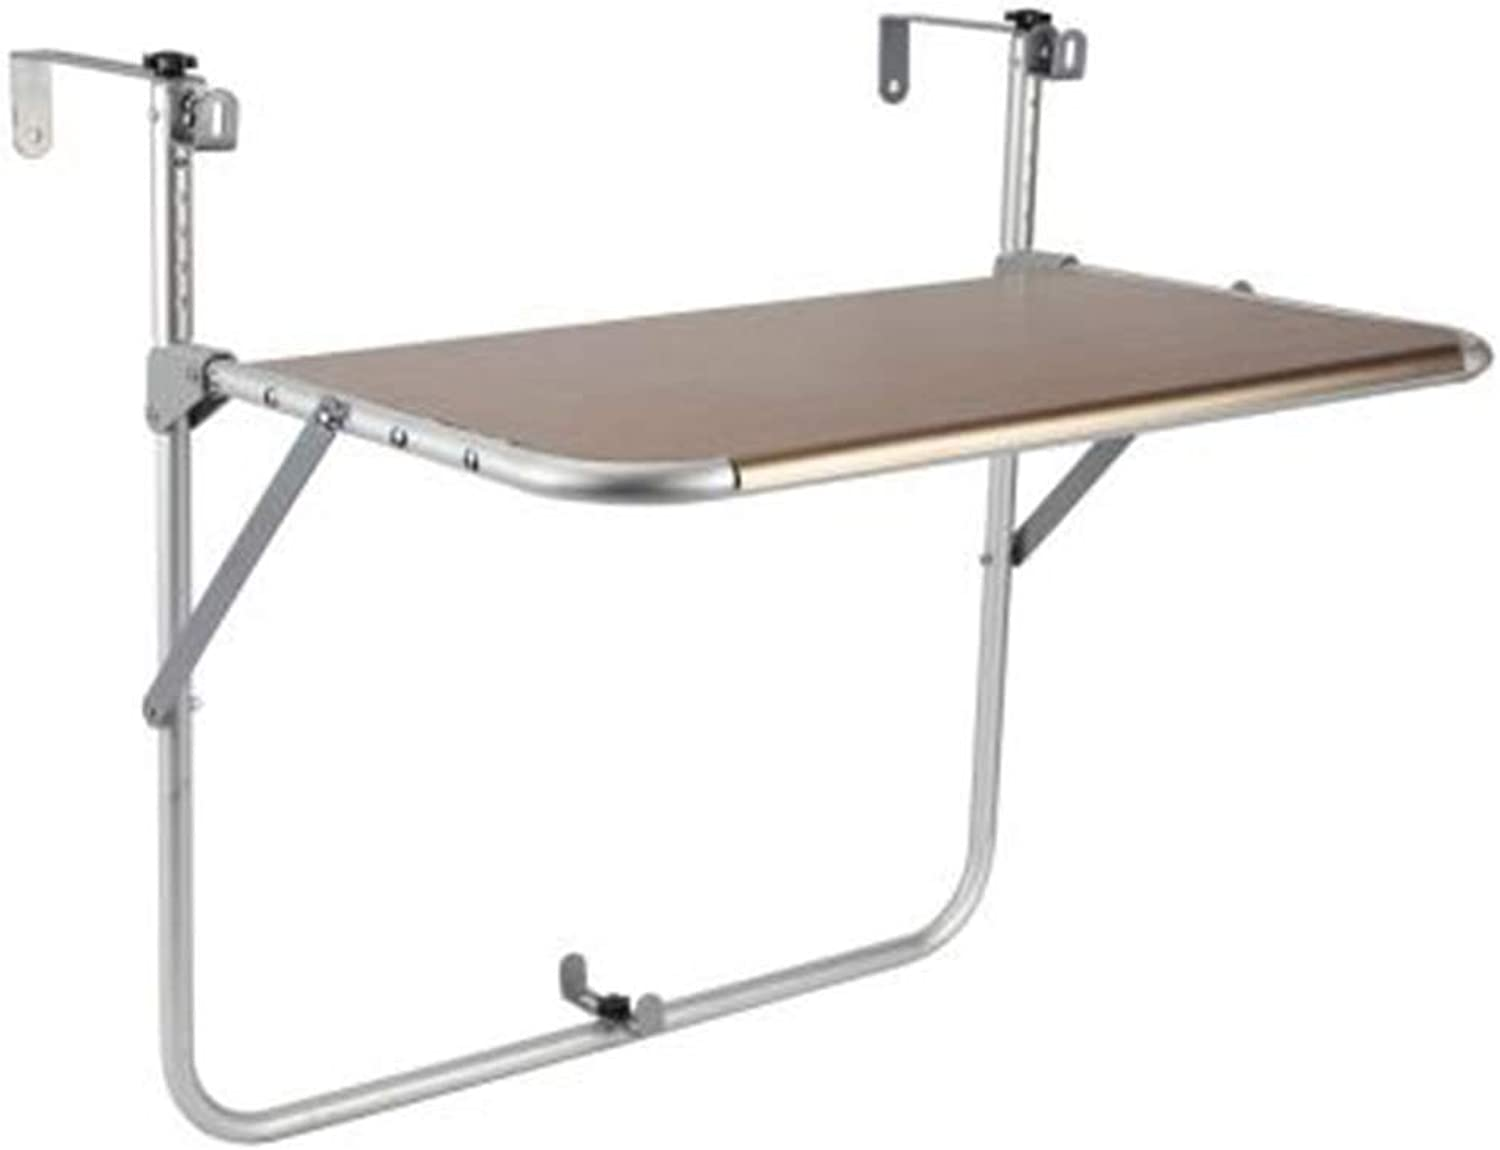 Coffee Table Folding Table Hanging Table Desktop Height Adjustable by 5 Positions Mobile Drying Rack Multifunction Leisure Storage Rack, Aluminum Alloy